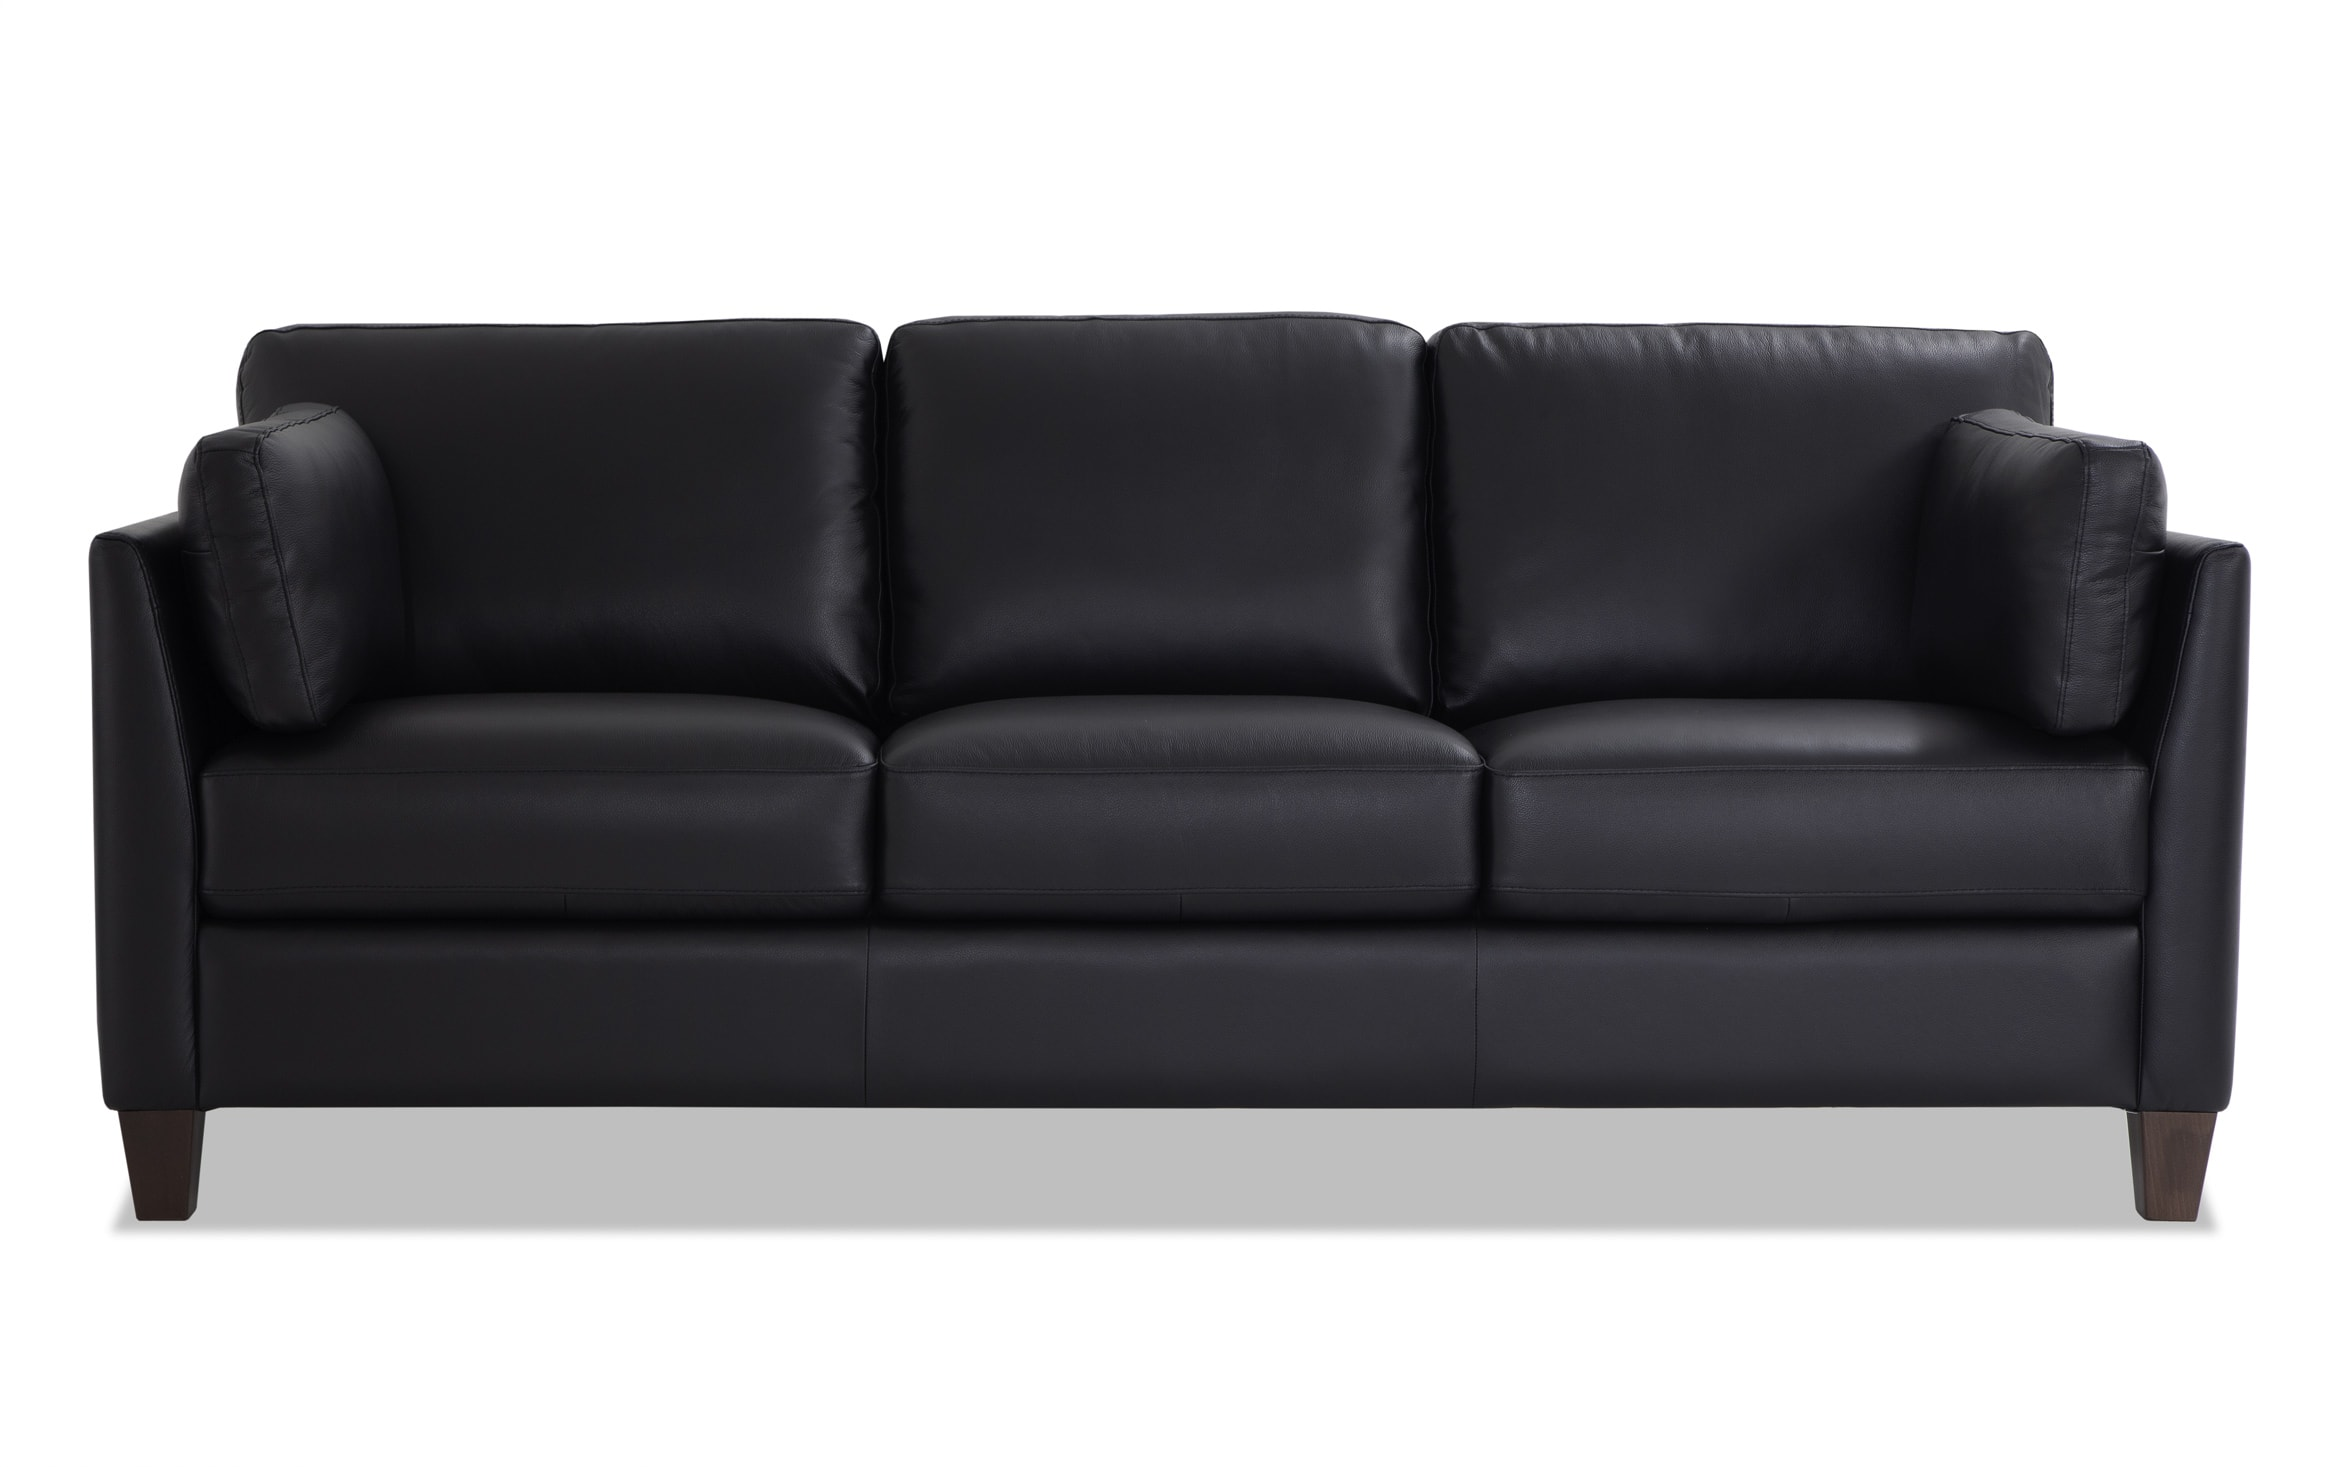 Antonio Black Leather Sofa Bobs